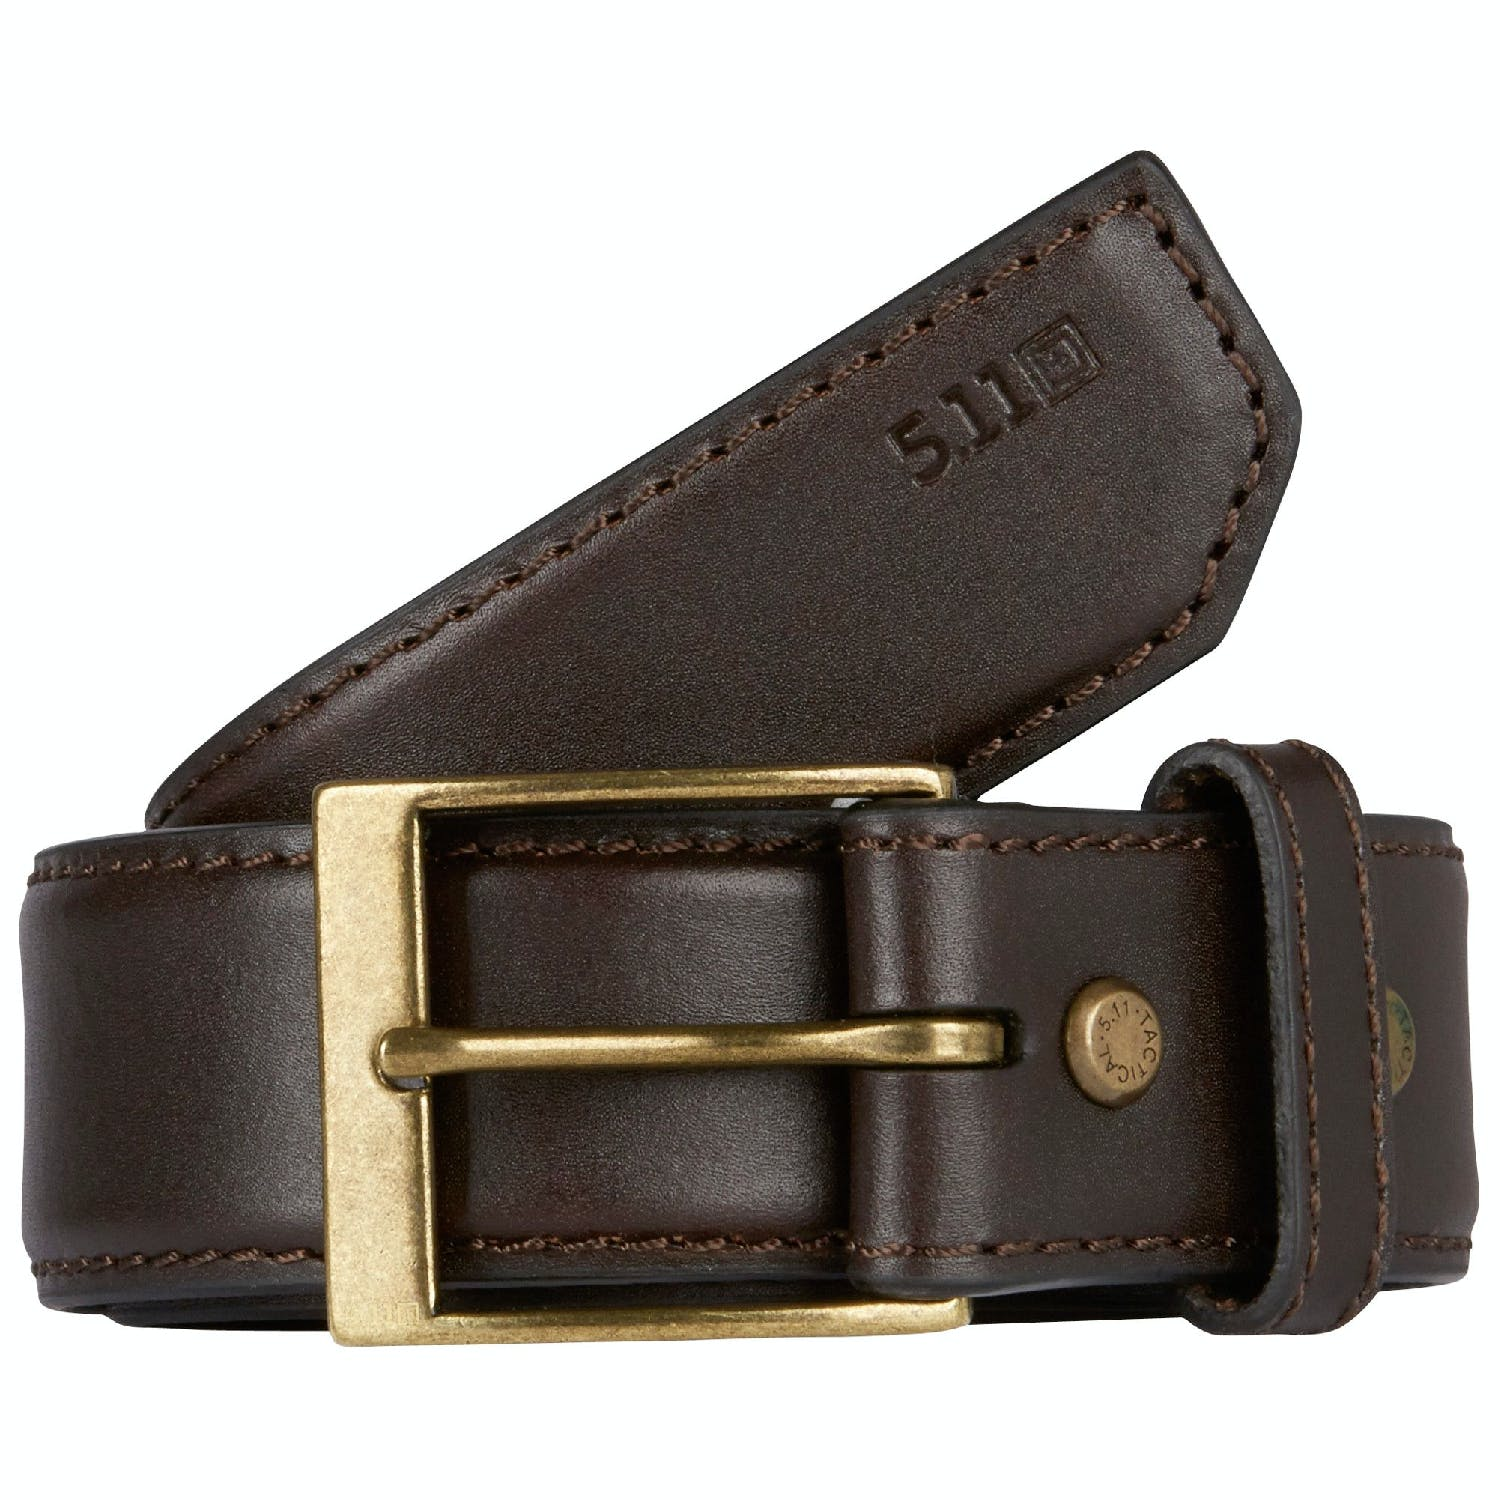 5 11 Tactical Casual Leather 1 5 Inch Belt From Nightgear Uk